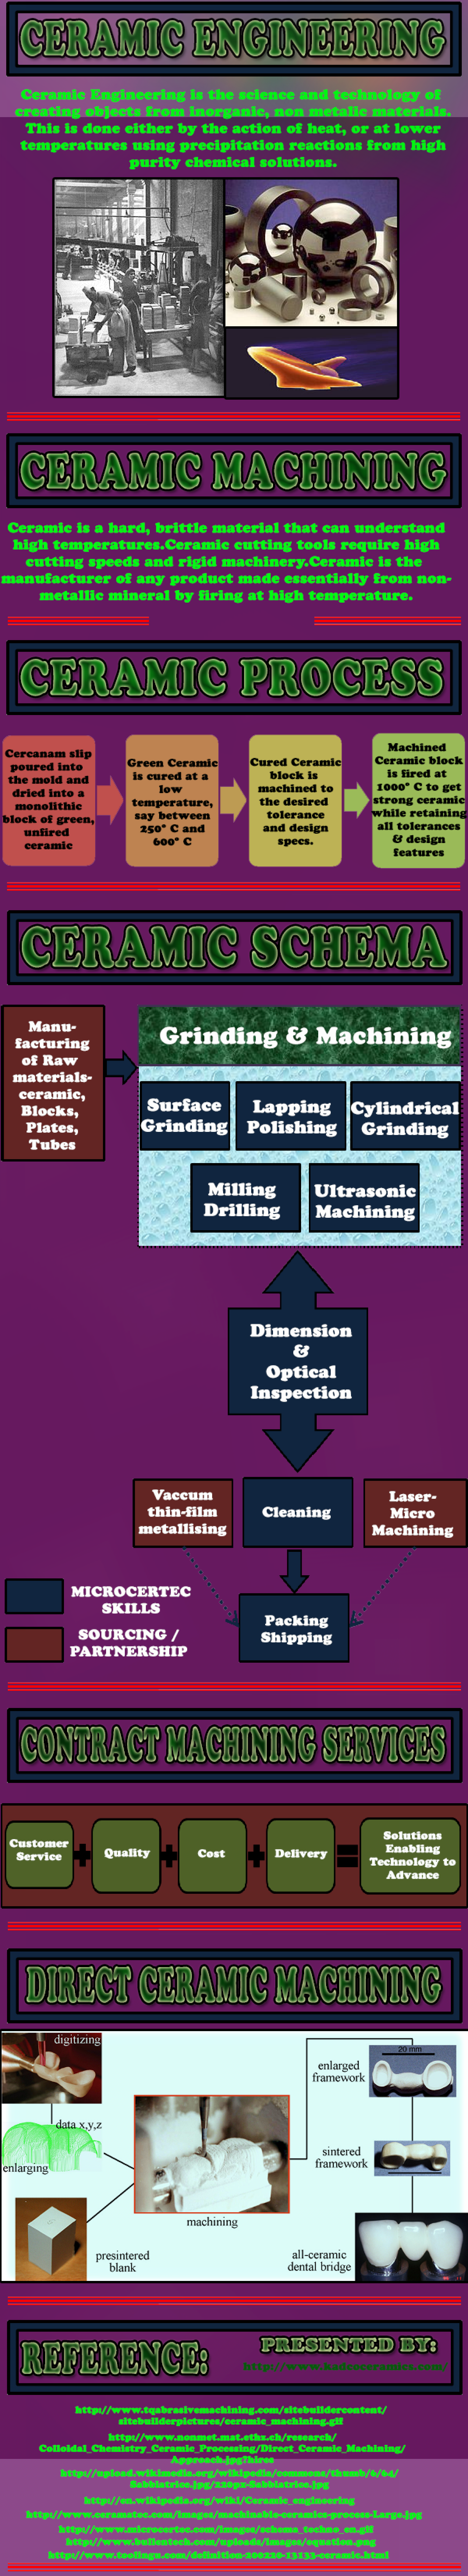 Avail Diamond Machining and Milling services at affordable prices Infographic